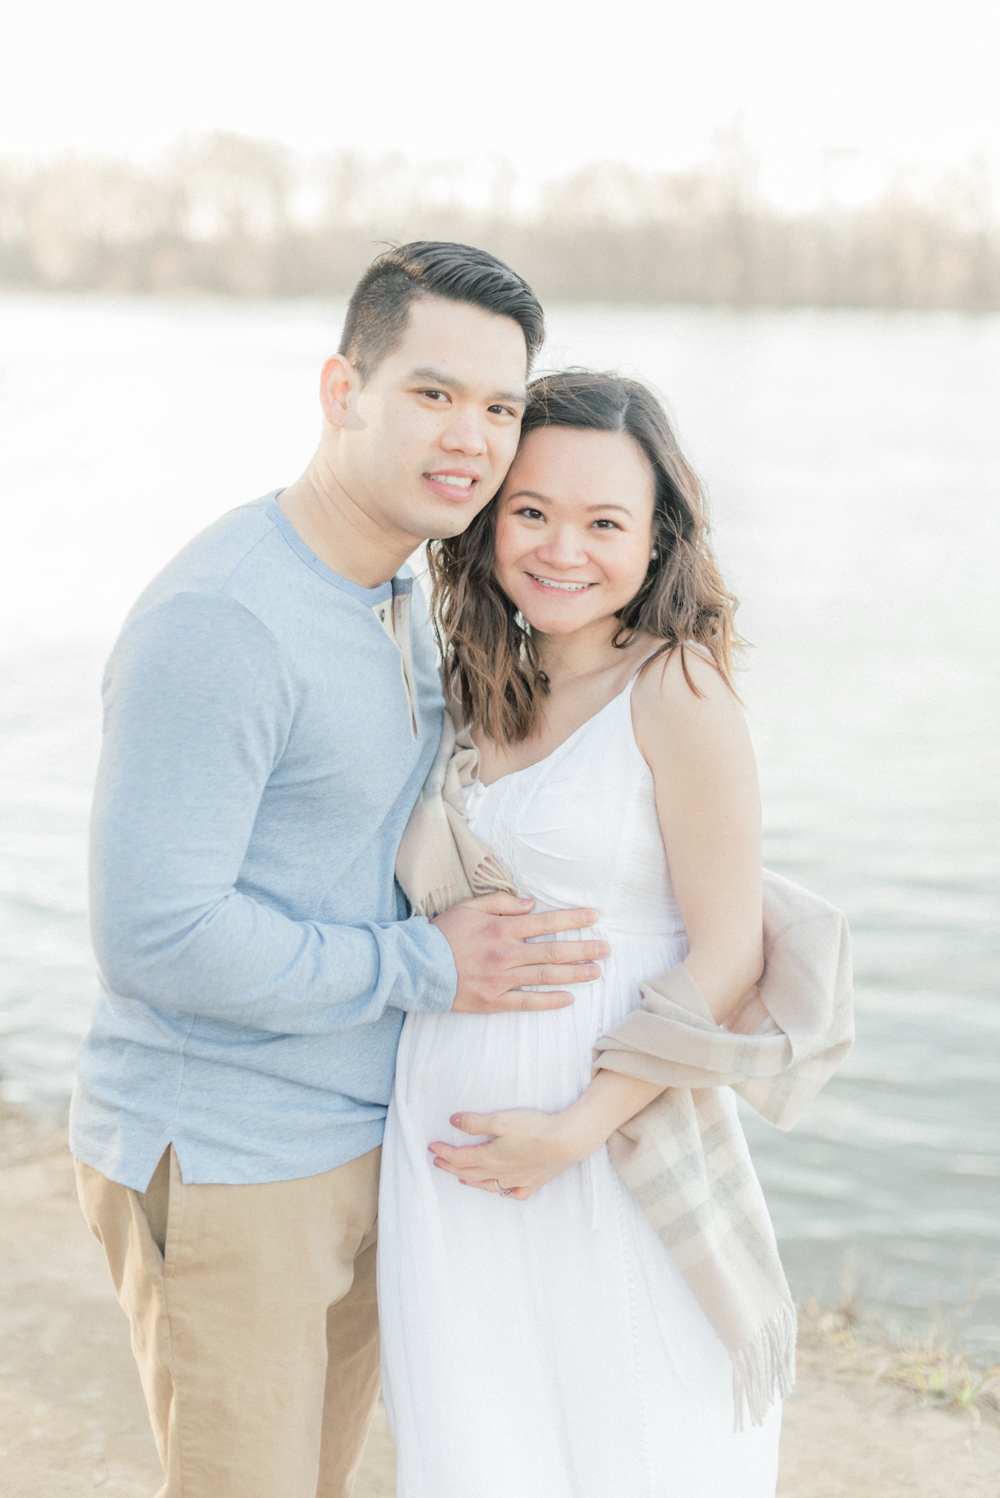 Maternity-Photographer-Washington-DC-Rebecca-Sable